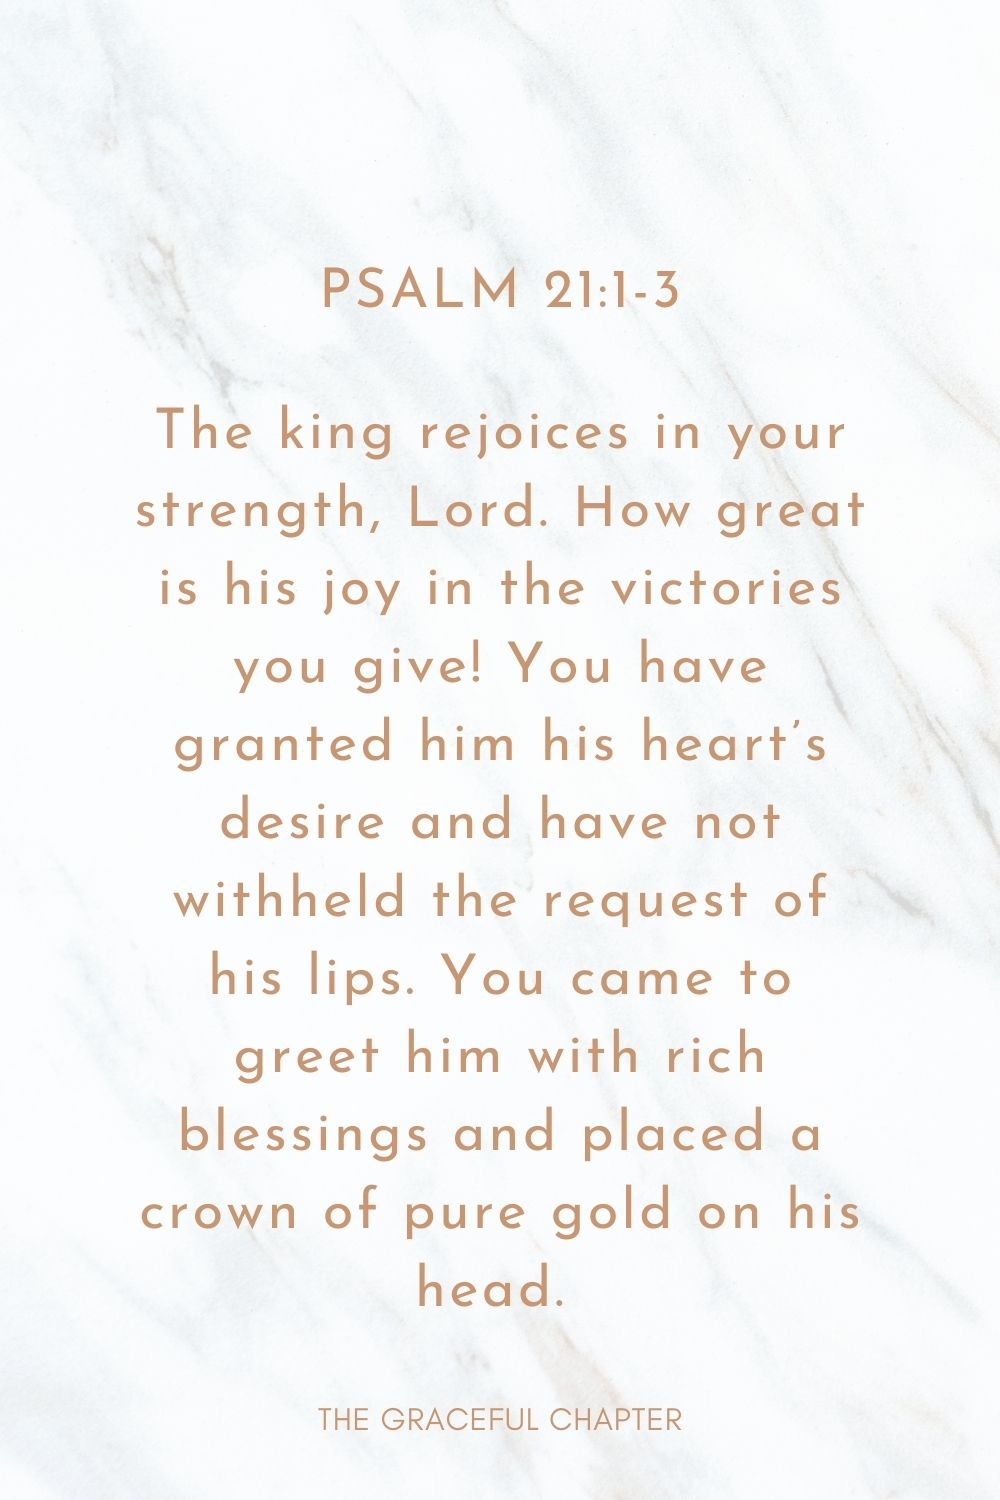 The king rejoices in your strength, Lord. How great is his joy in the victories you give! You have granted him his heart's desire and have not withheld the request of his lips. You came to greet him with rich blessings and placed a crown of pure gold on his head.  Psalm 21:1-3